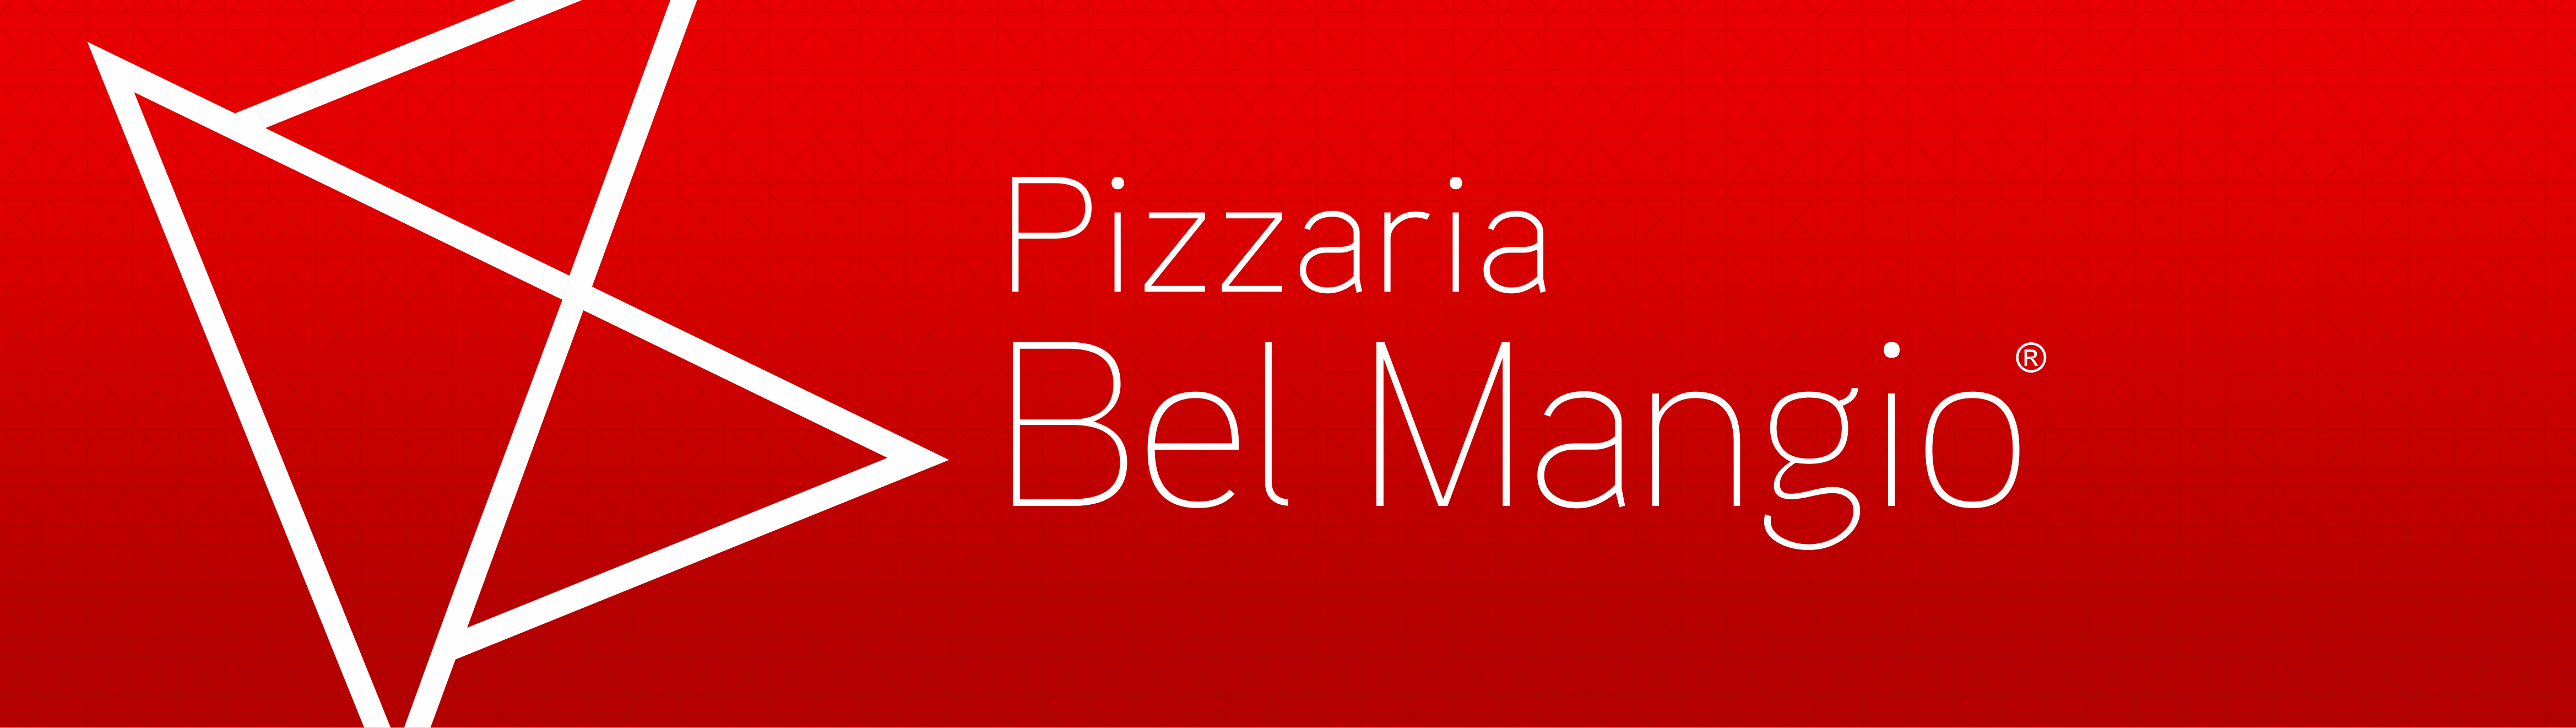 Pizzaria Bel Mangio